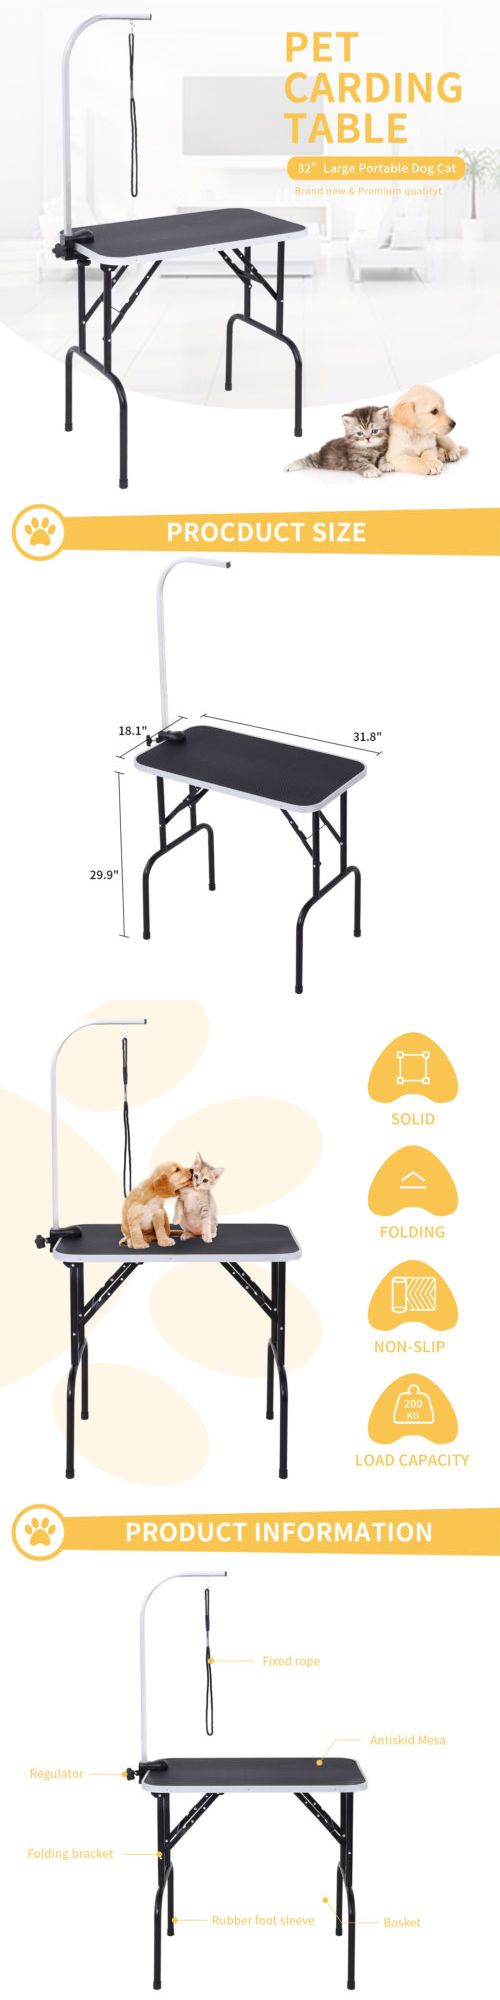 Grooming Tables 146241 32 Heavy Duty Portable Grooming Table Dog Cat Pet W Adjustable Armandnoose Large Buy It Now Only 47 9 On Eb Pets Cats Dog Cat Pets